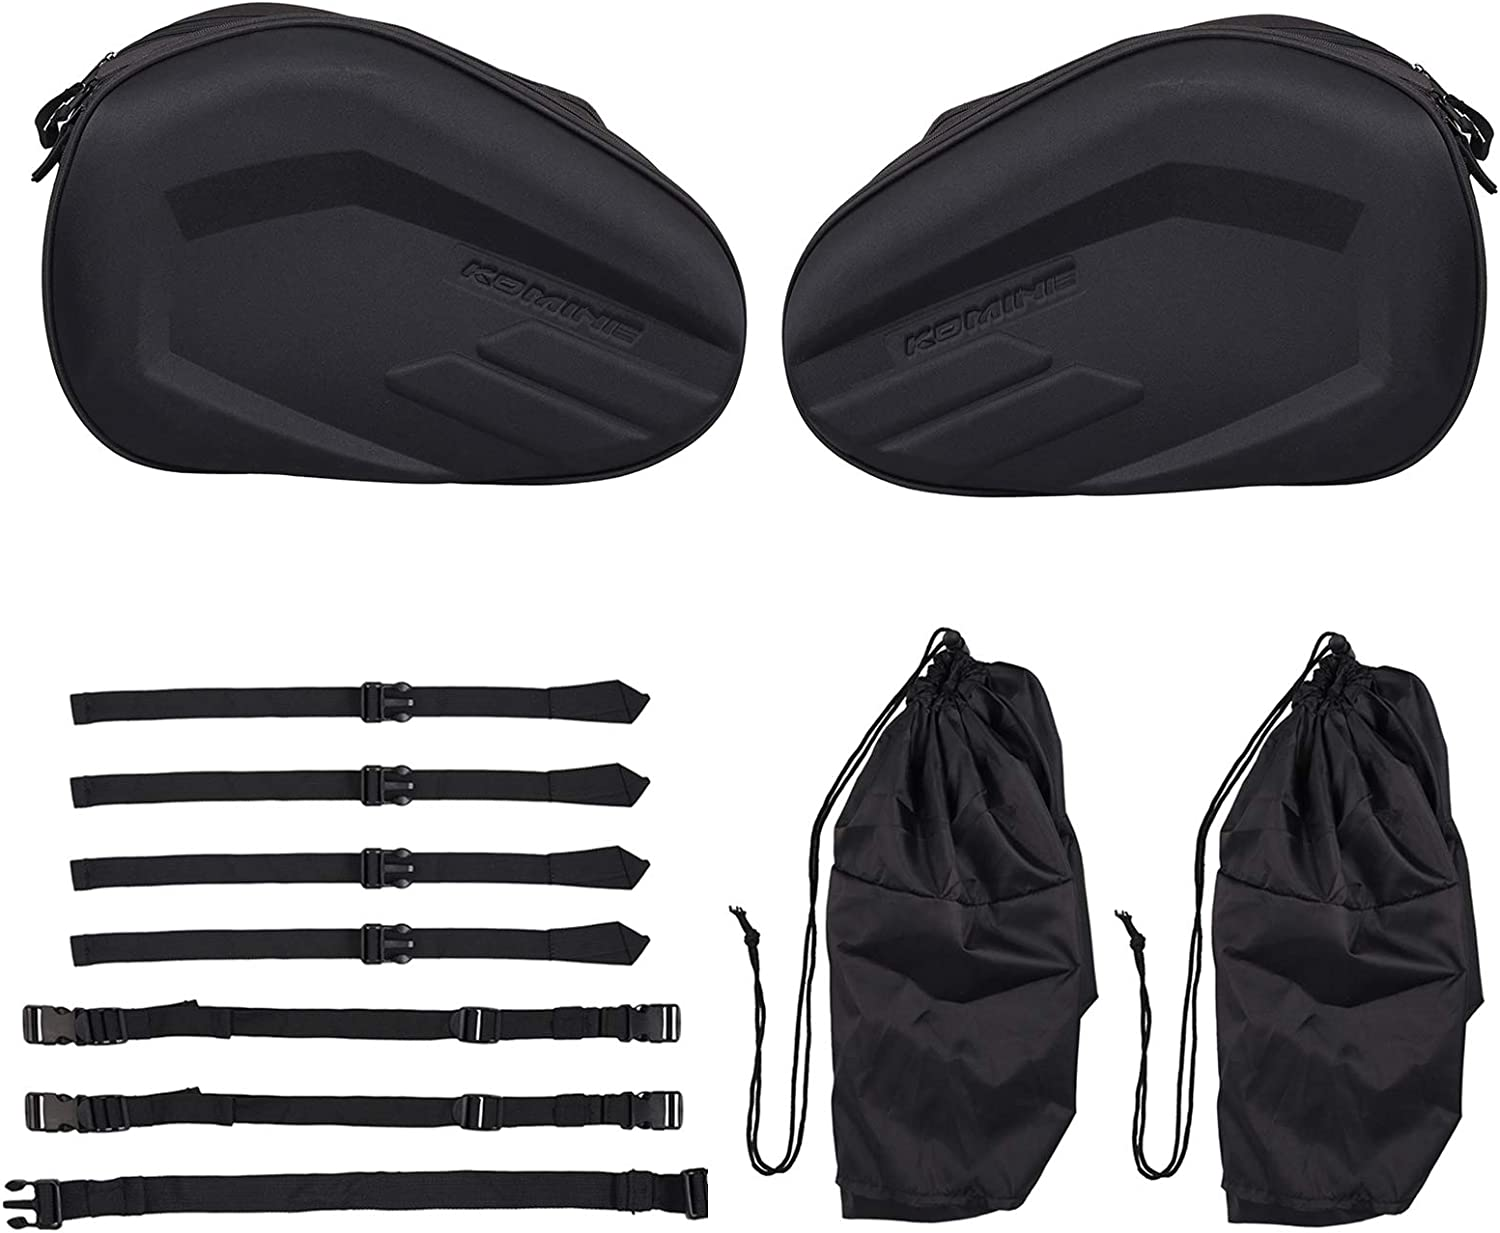 Justech 2PCs Universal Motorcycle Bag Max 40% OFF Max 81% OFF Side Saddle